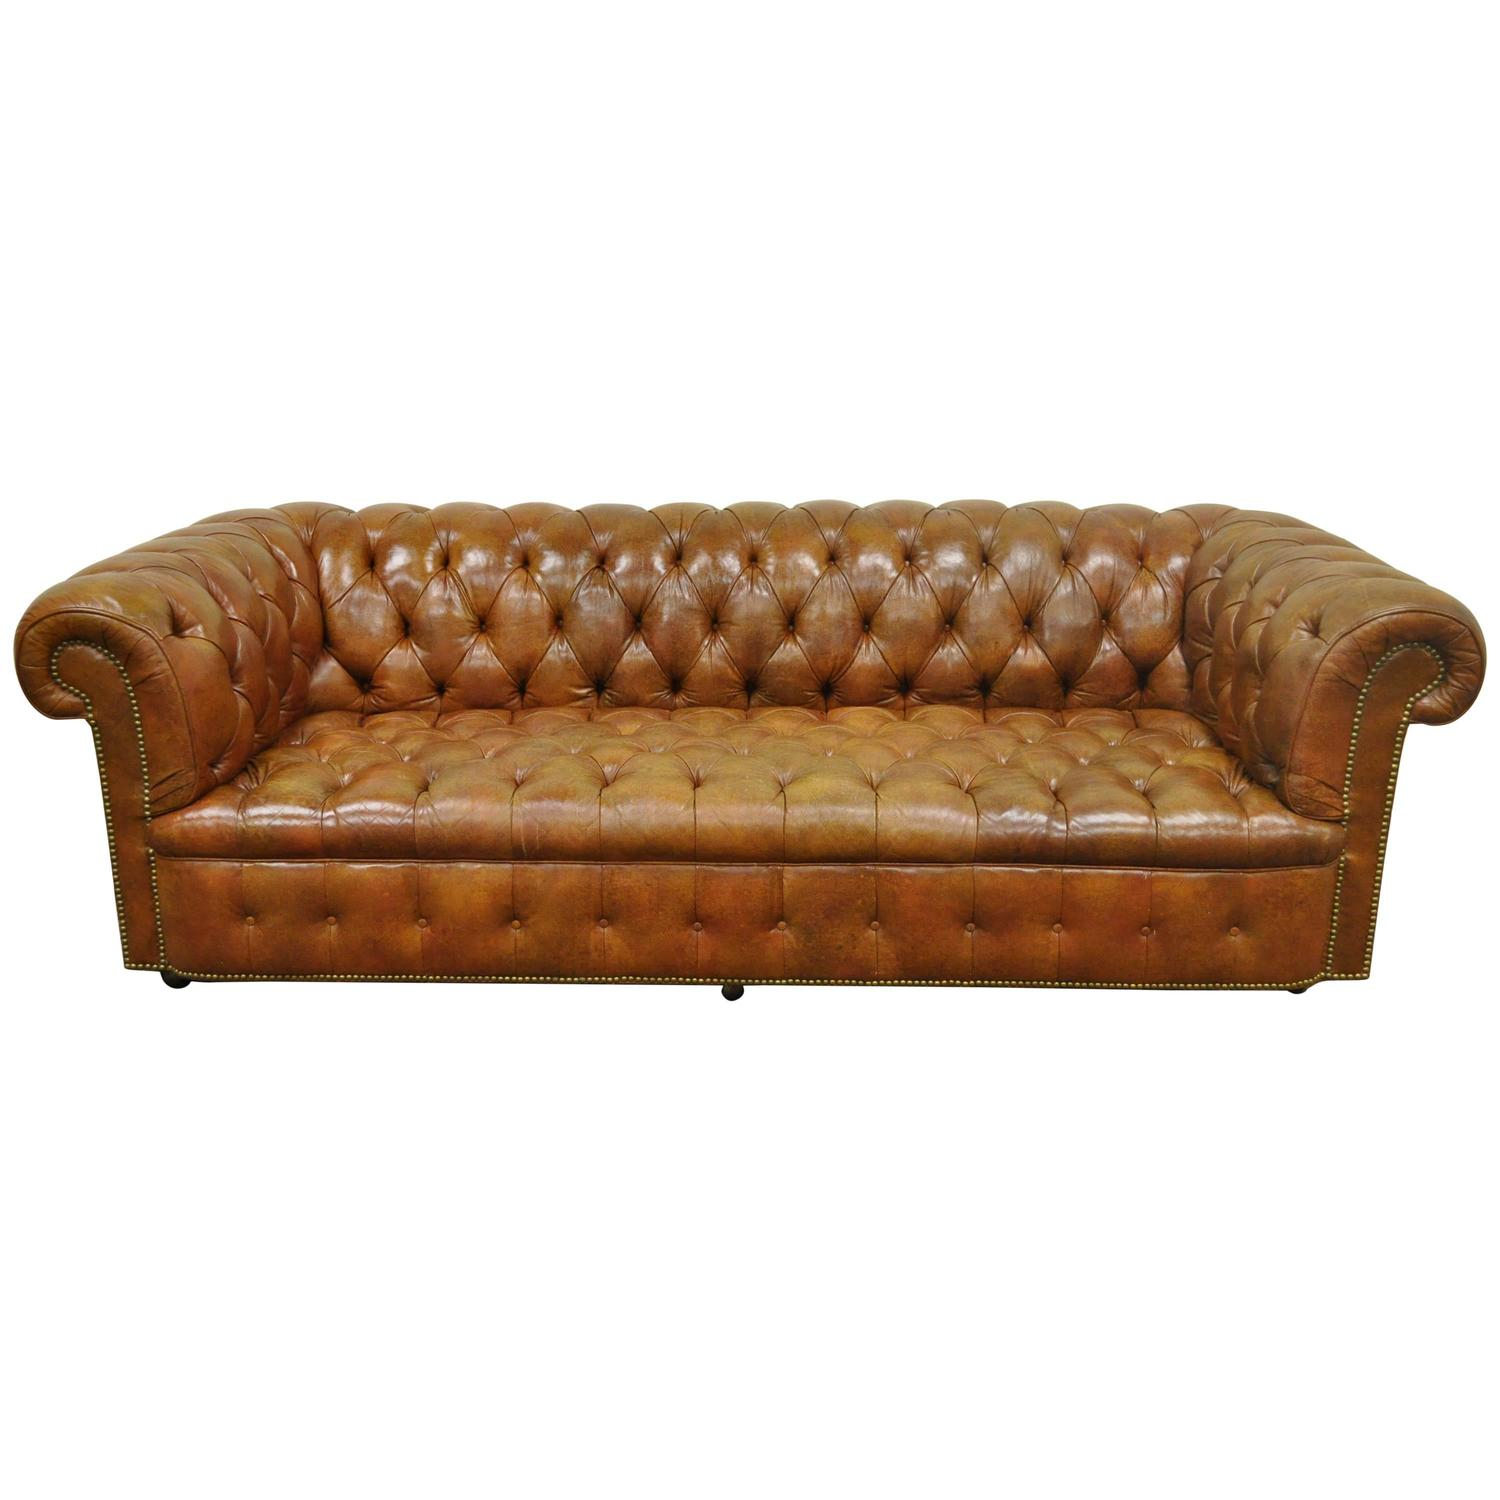 tufted brown leather sofa venta cama barato madrid henredon rolled arm english style button